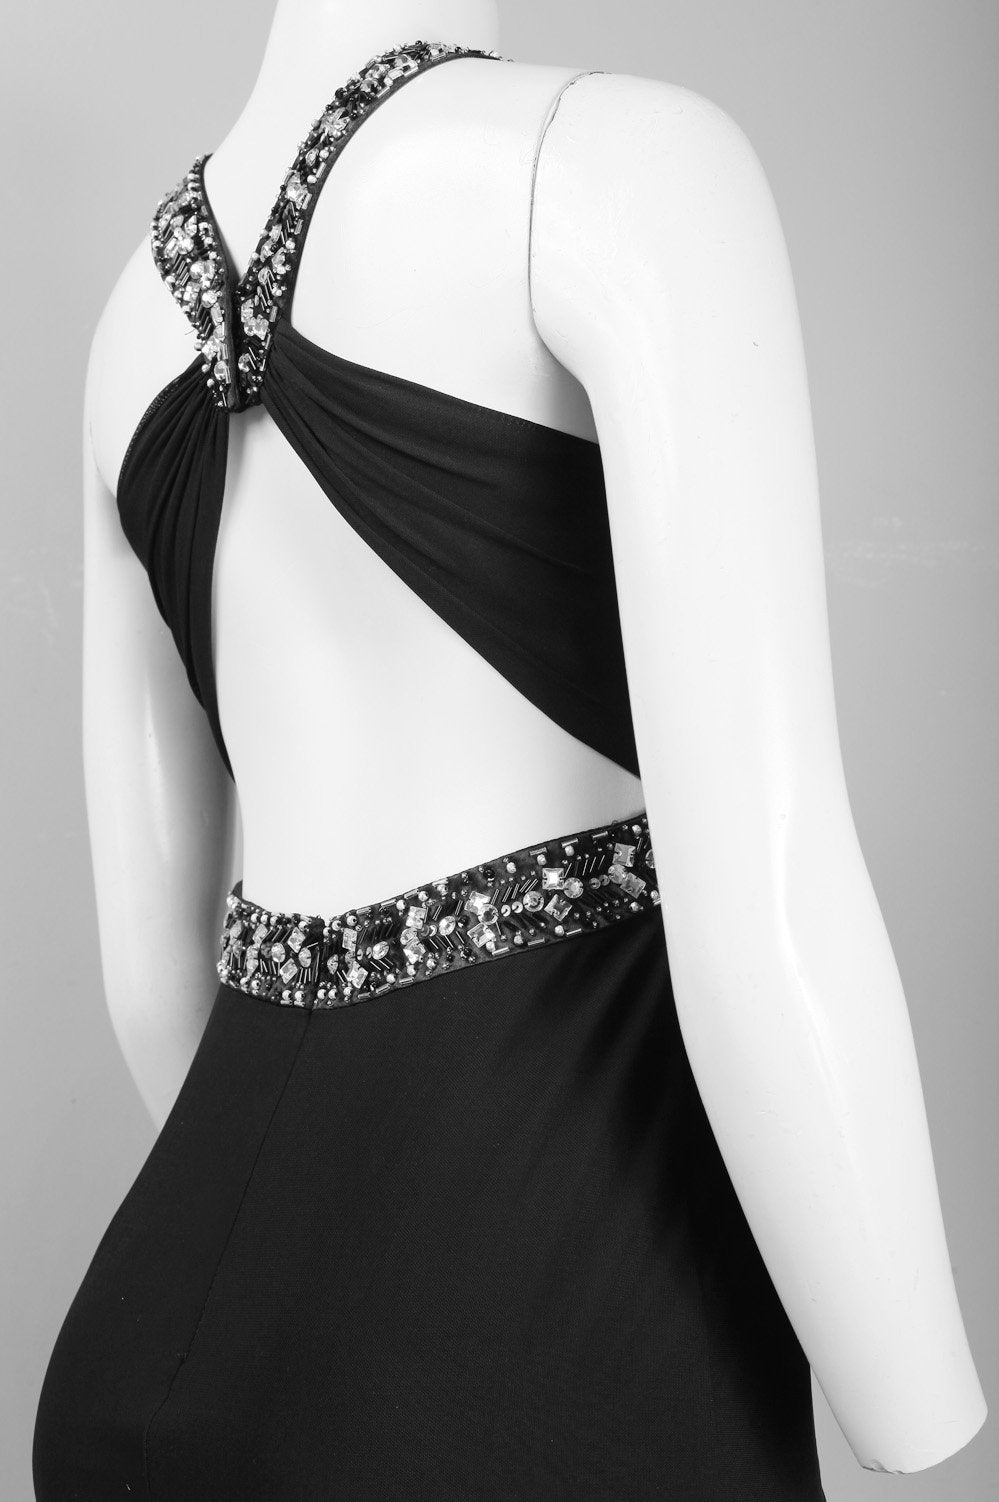 Decode Neckline and keyhole dress with twisted strap.